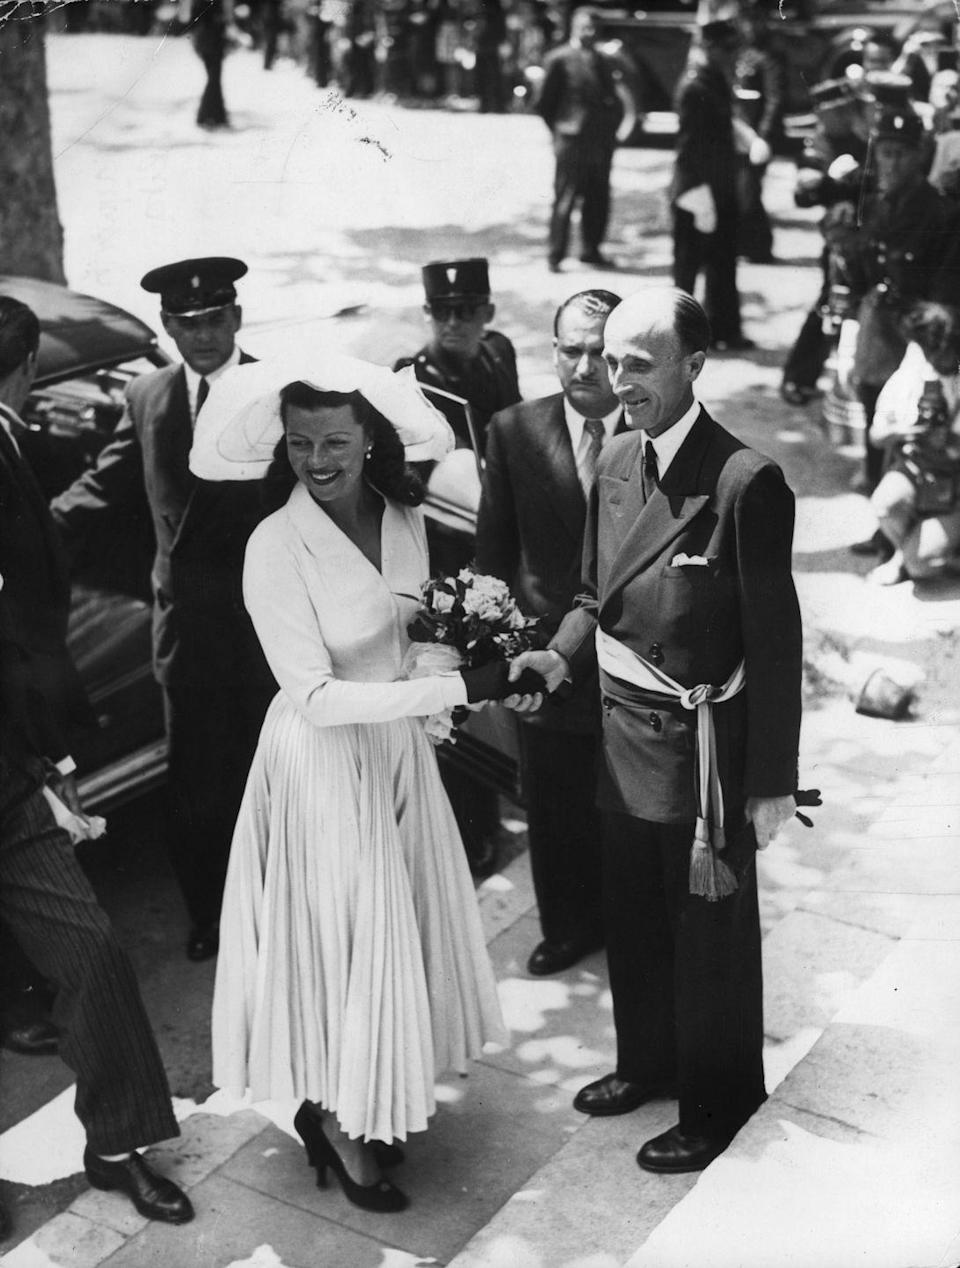 <p>Rita Hayworth arrives at her wedding to Prince Aly Khan wearing an elegant and understated dress by Jacques Fath and a wide-brimmed hat. The couple's reception was in the South of France at the Prince's Château de l'Horizon. </p>